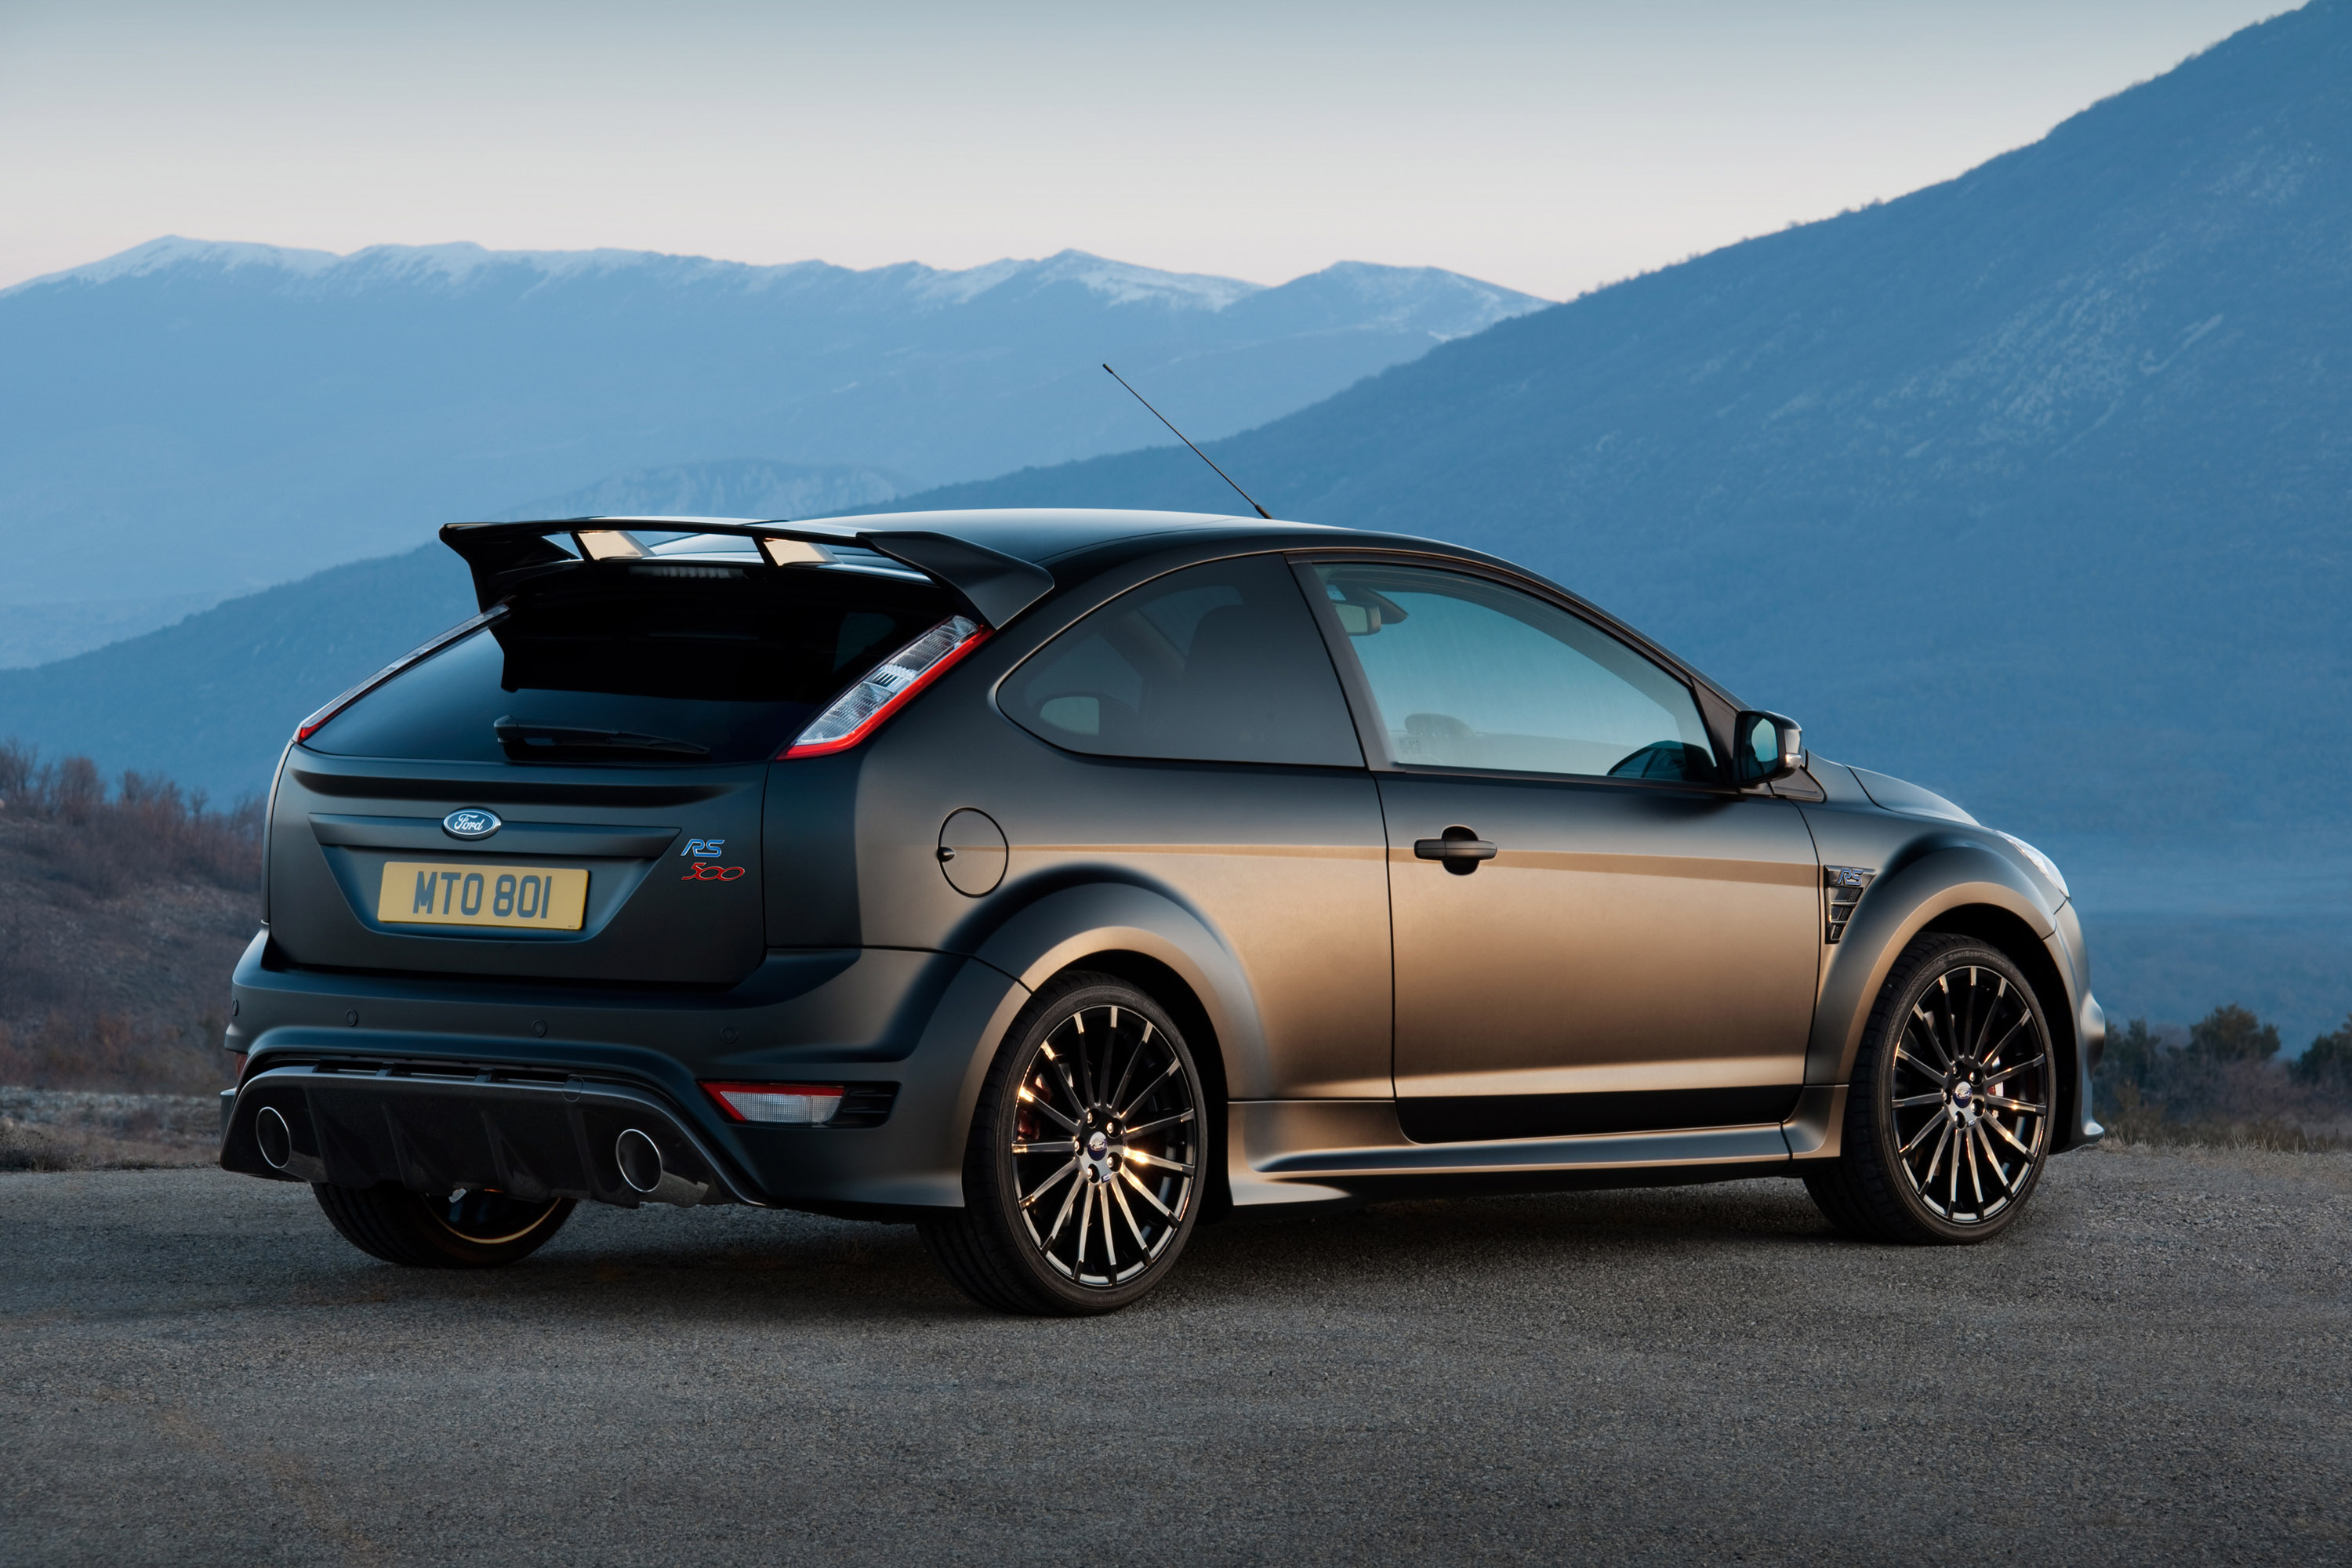 Ford Focus Hatchback Rims >> Ford Focus RS500 - performance at the highest level